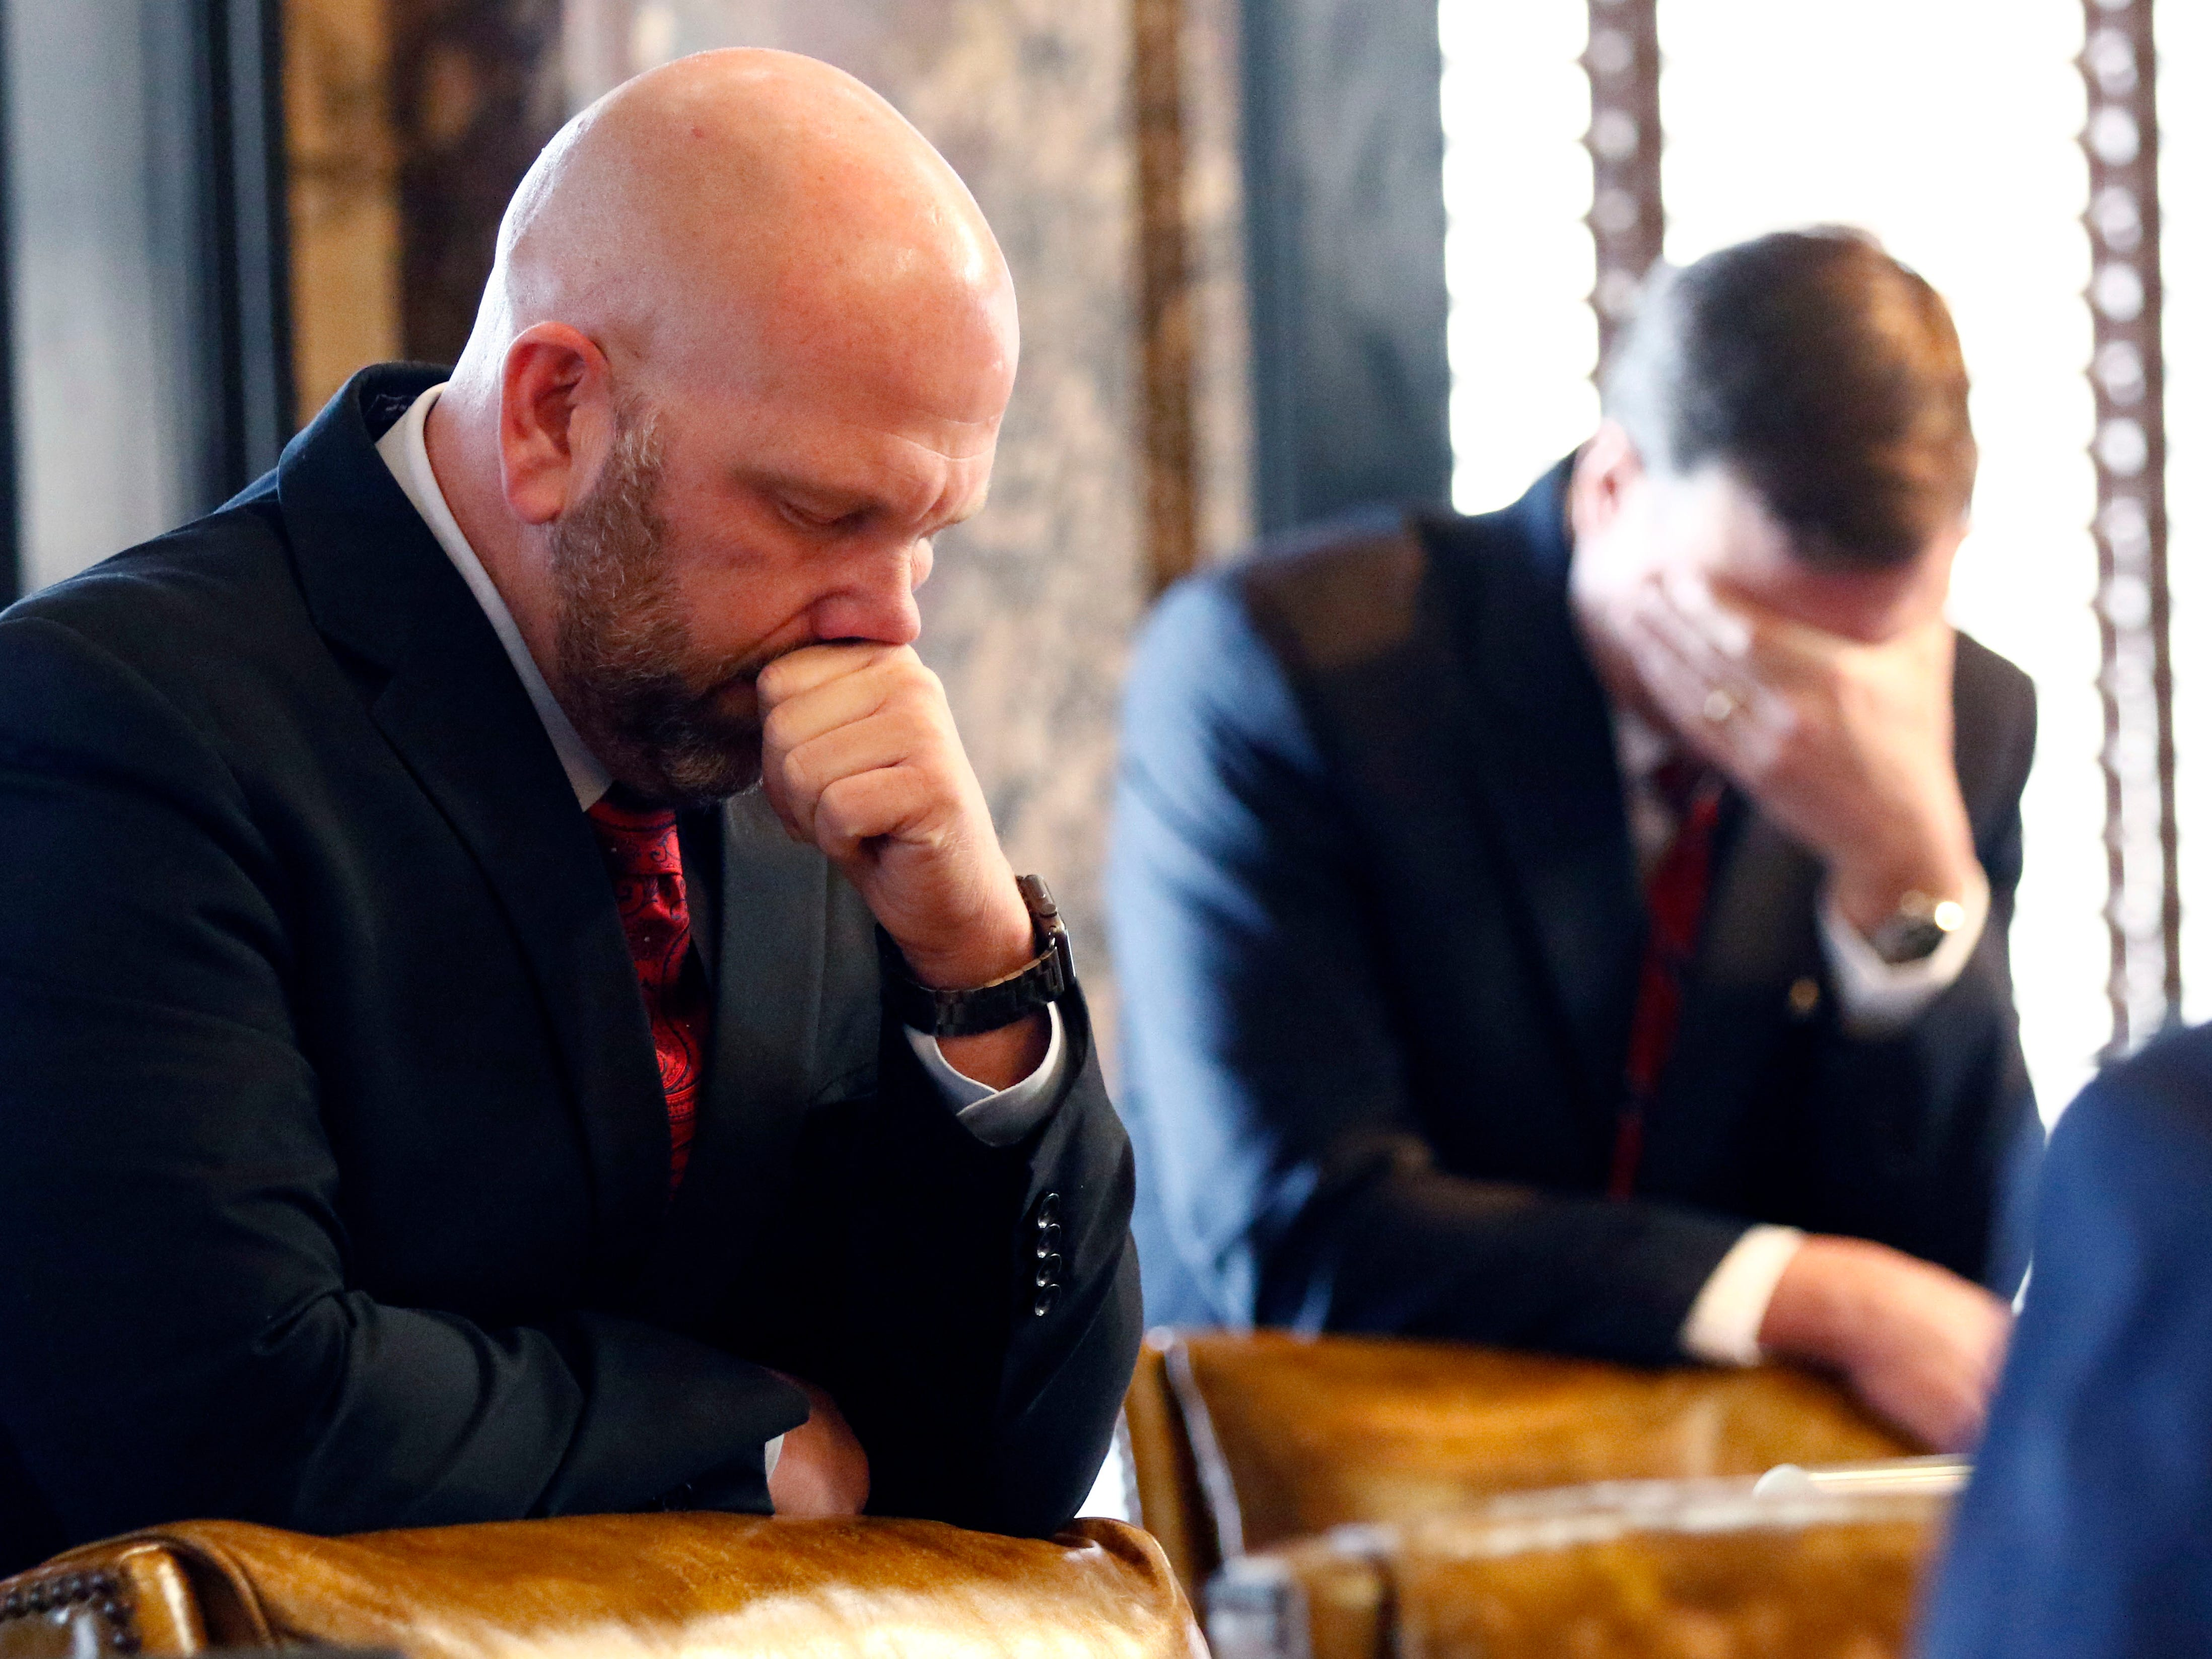 Republican Senators Chris Massey of Nesbit, left, and Walter Michel of Ridgeland, bow their heads and pray during the invocation to start the 2019 Mississippi legislative session at the Capitol in Jackson, Miss., Tuesday, Jan. 8, 2019.